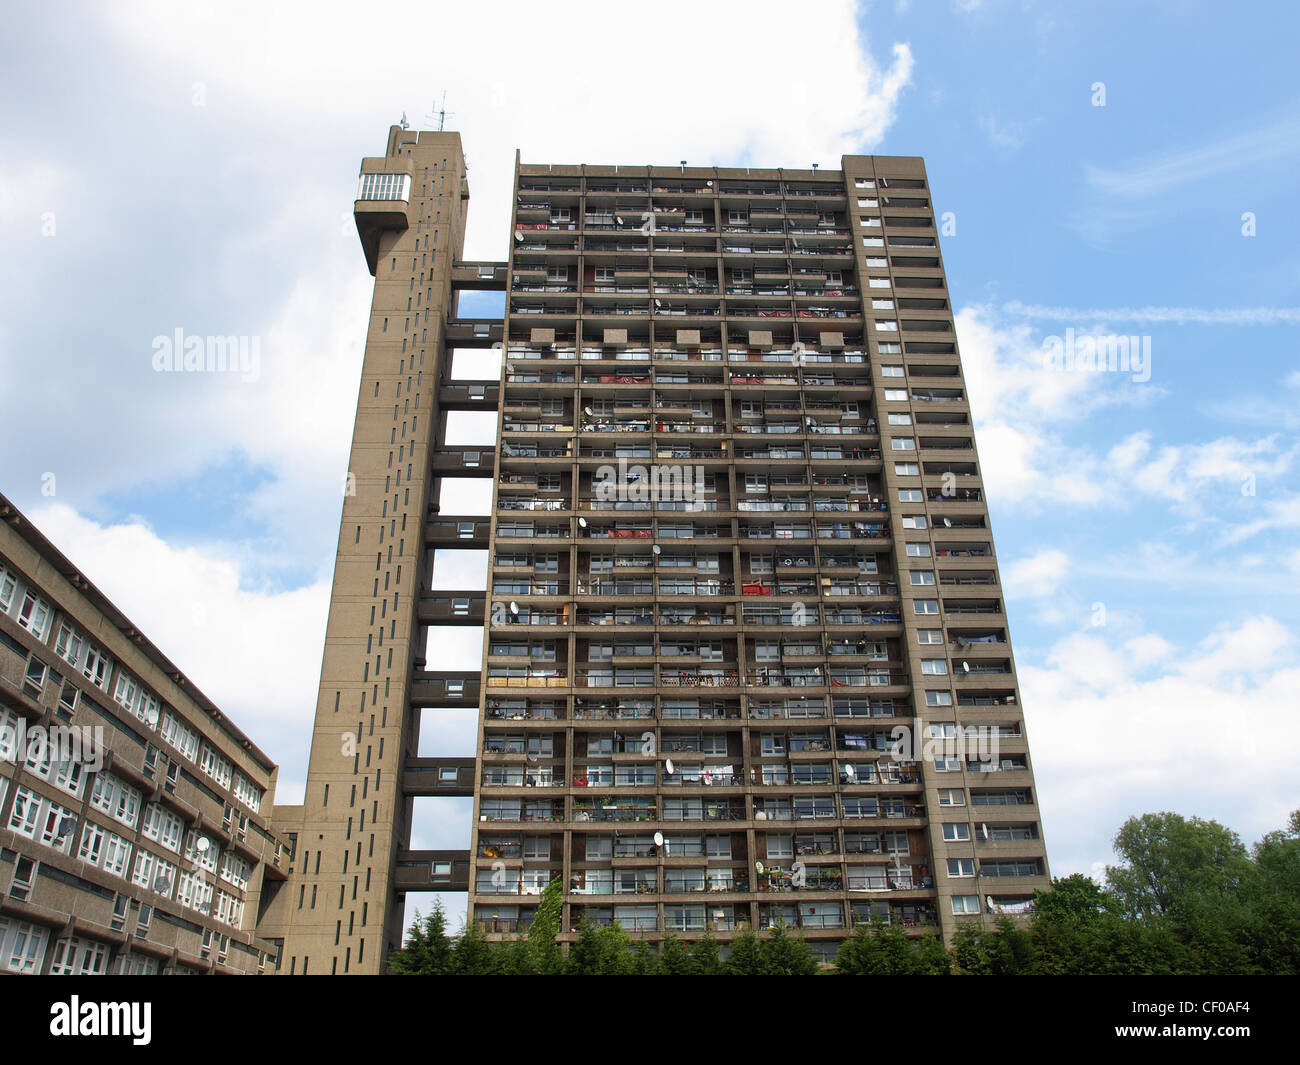 Trellick tower iconic new brutalist architecture in london for Architecture brutaliste